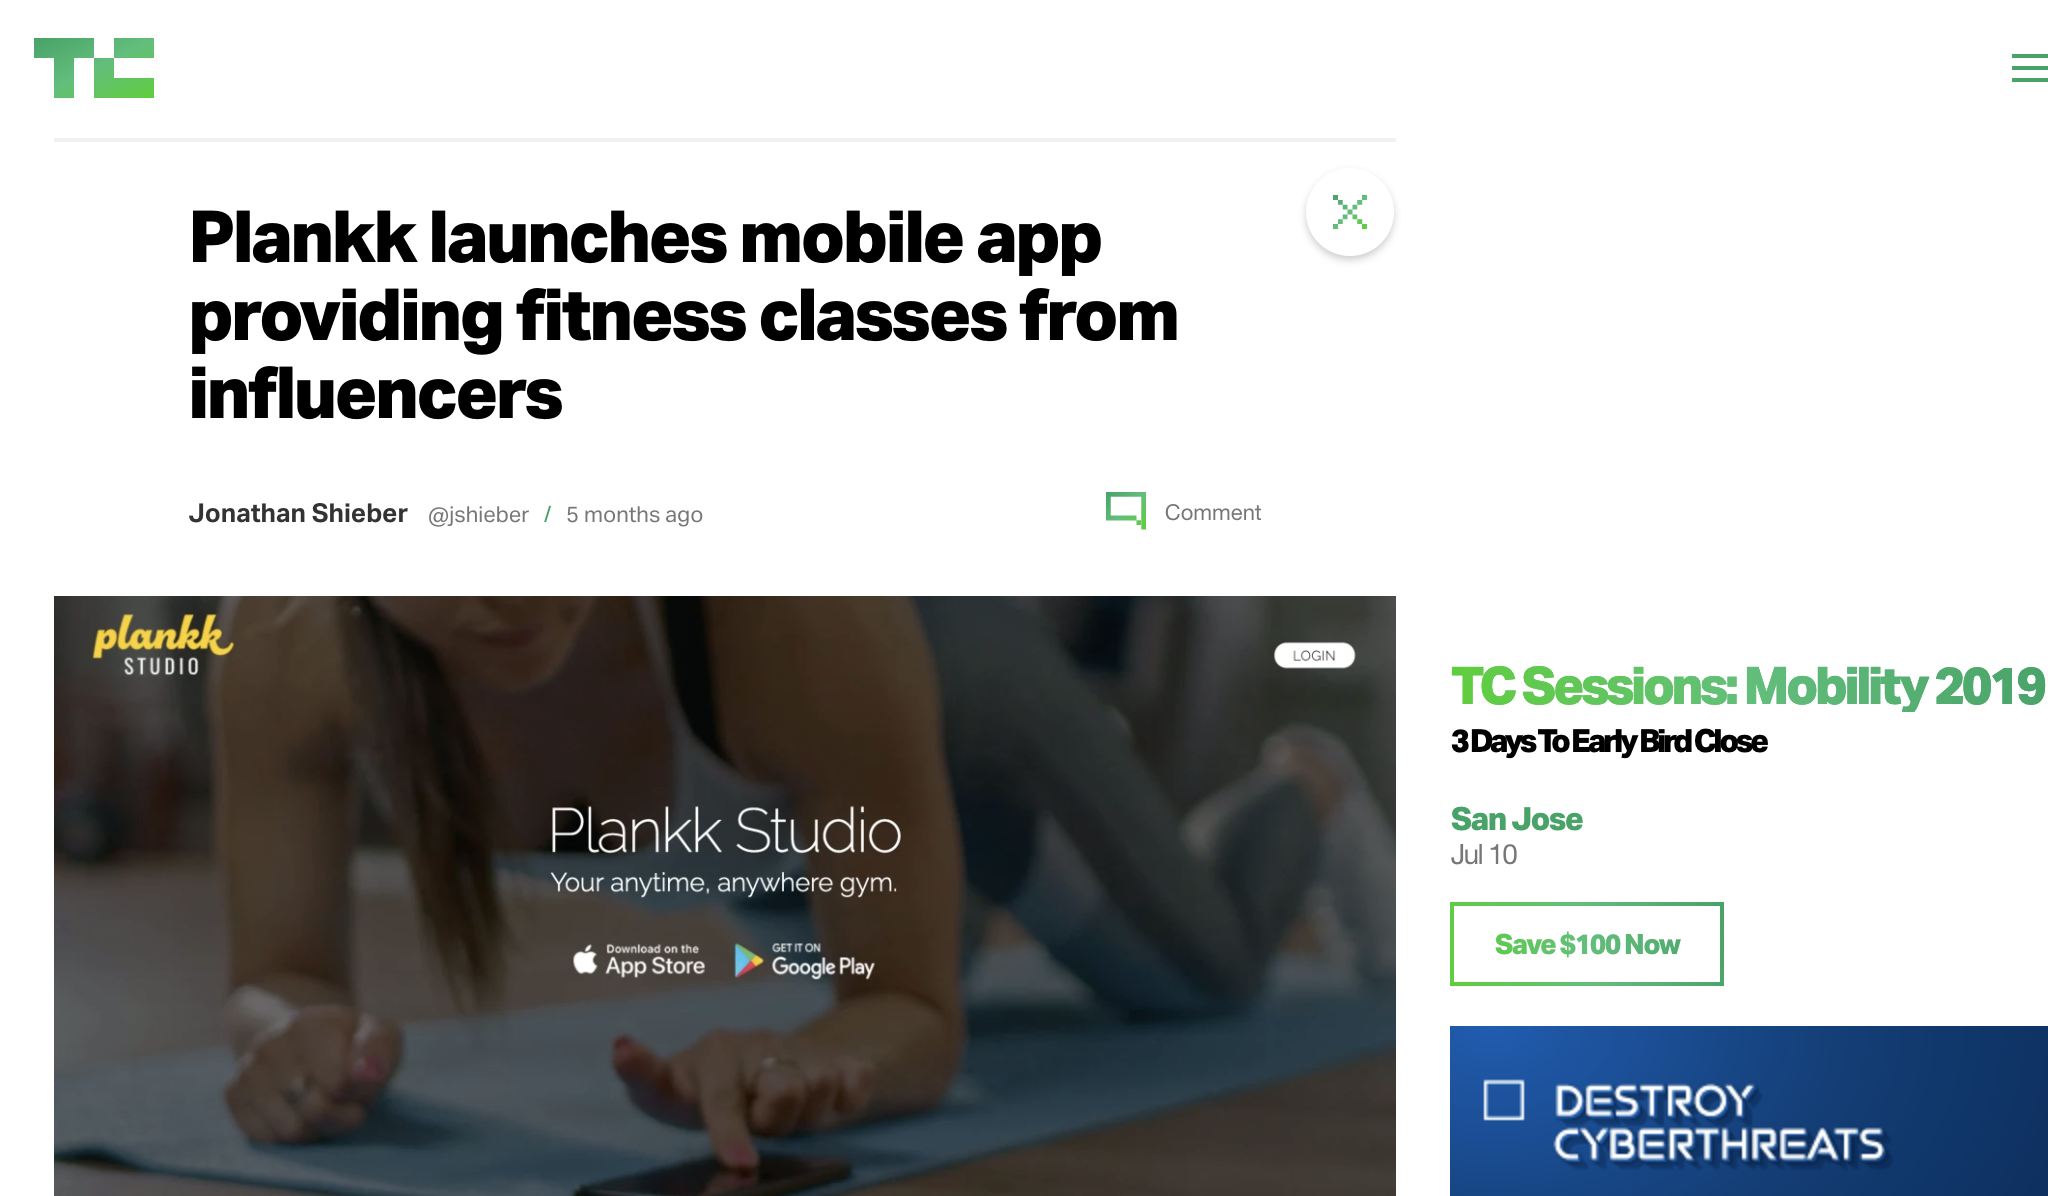 TechCrunch - Plankk launches mobile app providing fitness classes from influencers